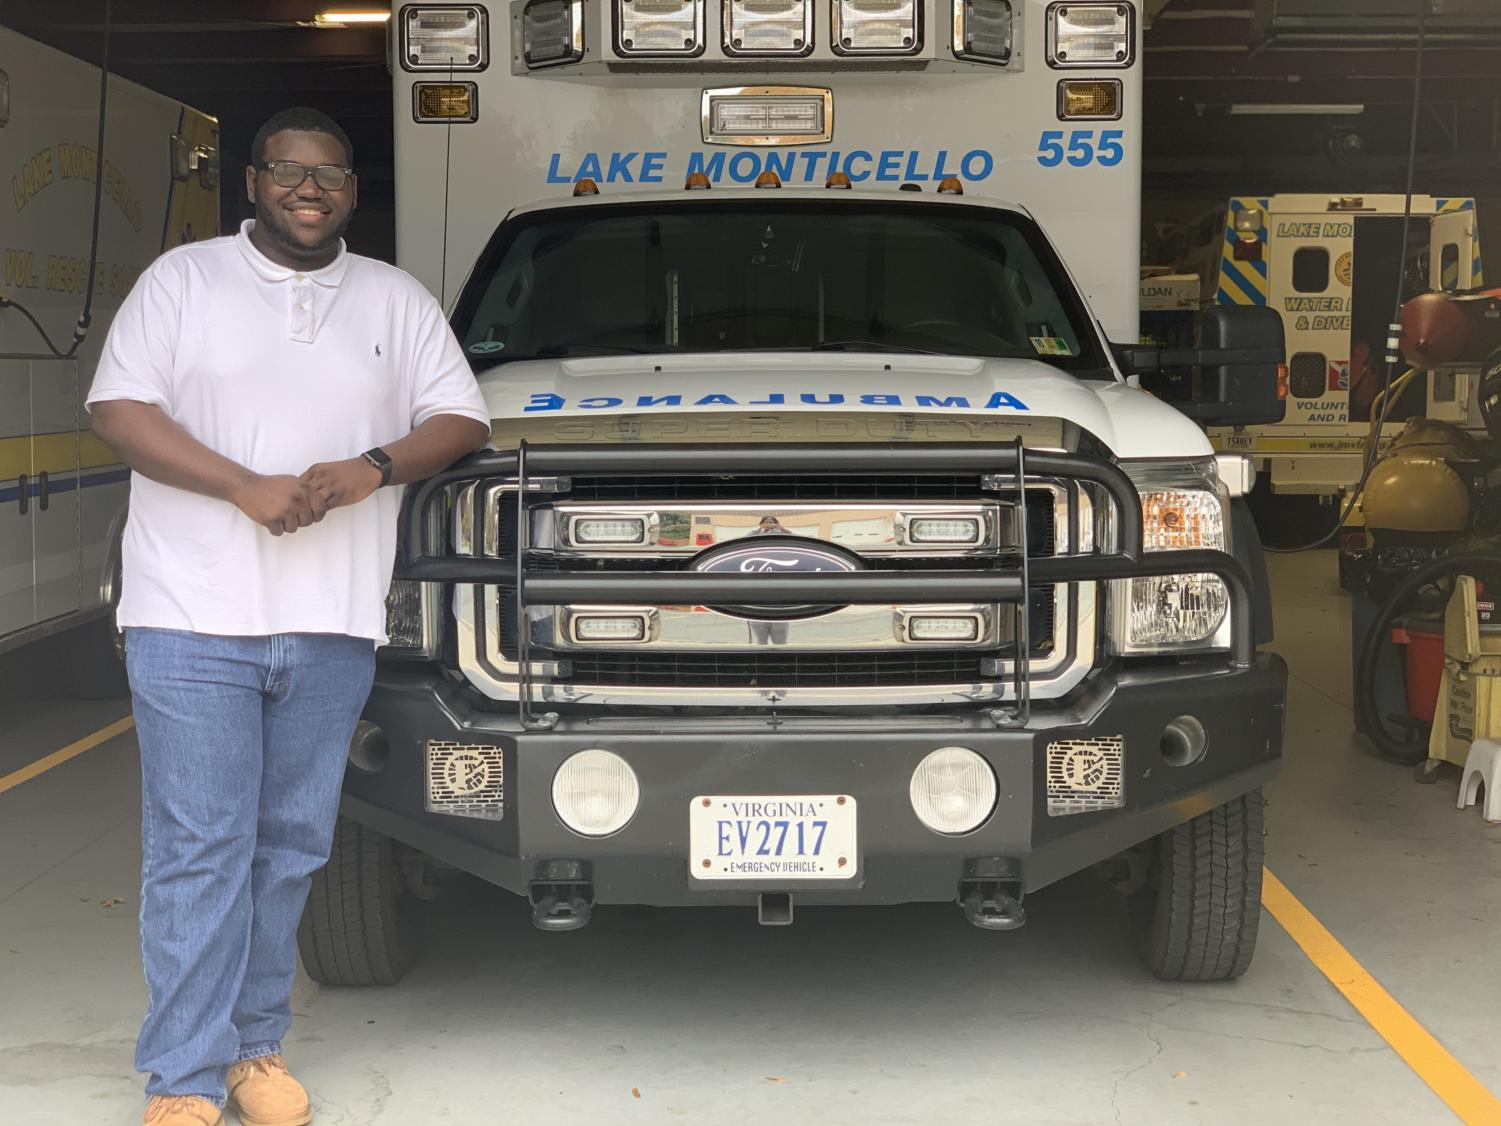 EMT volunteer KJuan Payne.  Photo courtesy of KJuan Payne